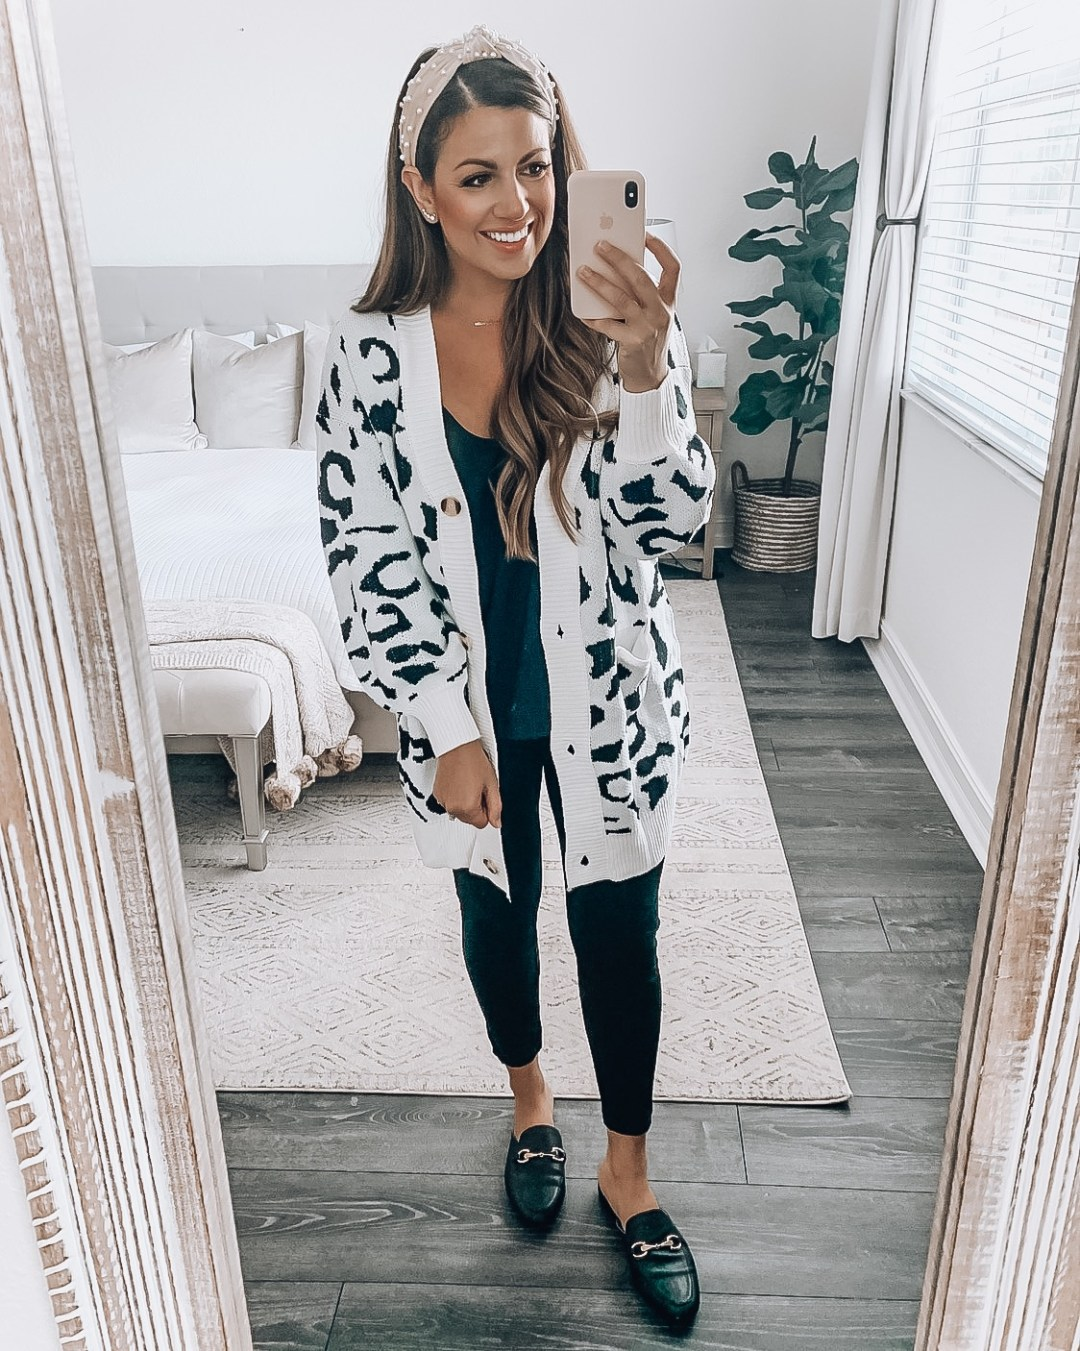 Amazon Fashion white leopard cardigan, Jaime Cittadino Florida Fashion Blogger, Leopard Style Inspo